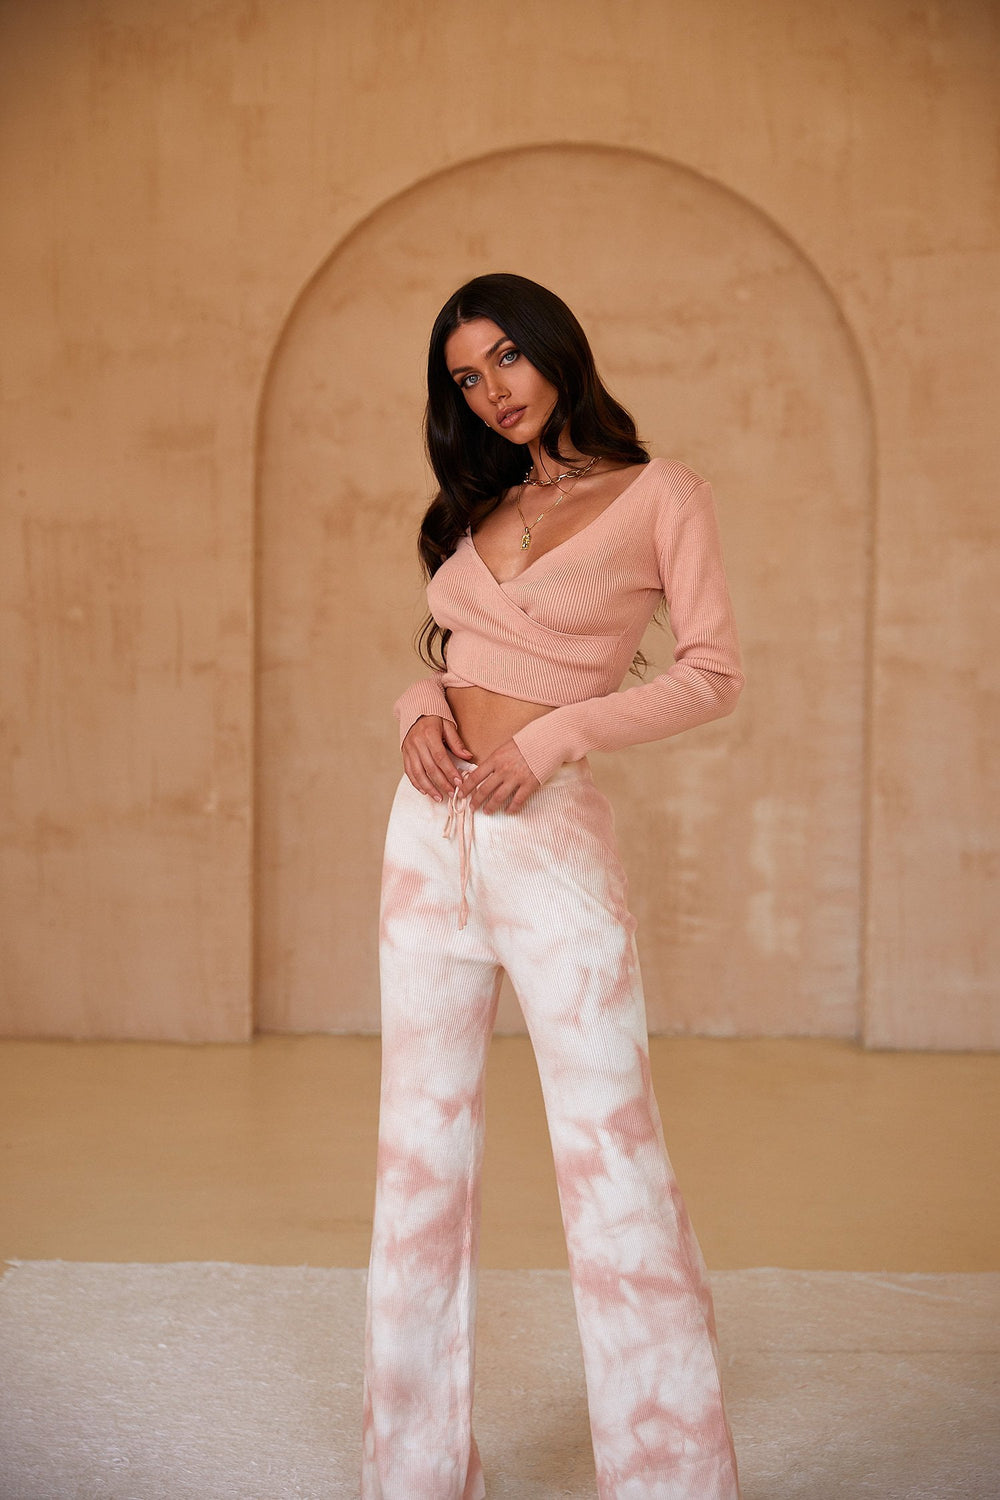 Grace Pants - Ribbed Nude Pink & White Tie Dye High Waist Lounge Pants